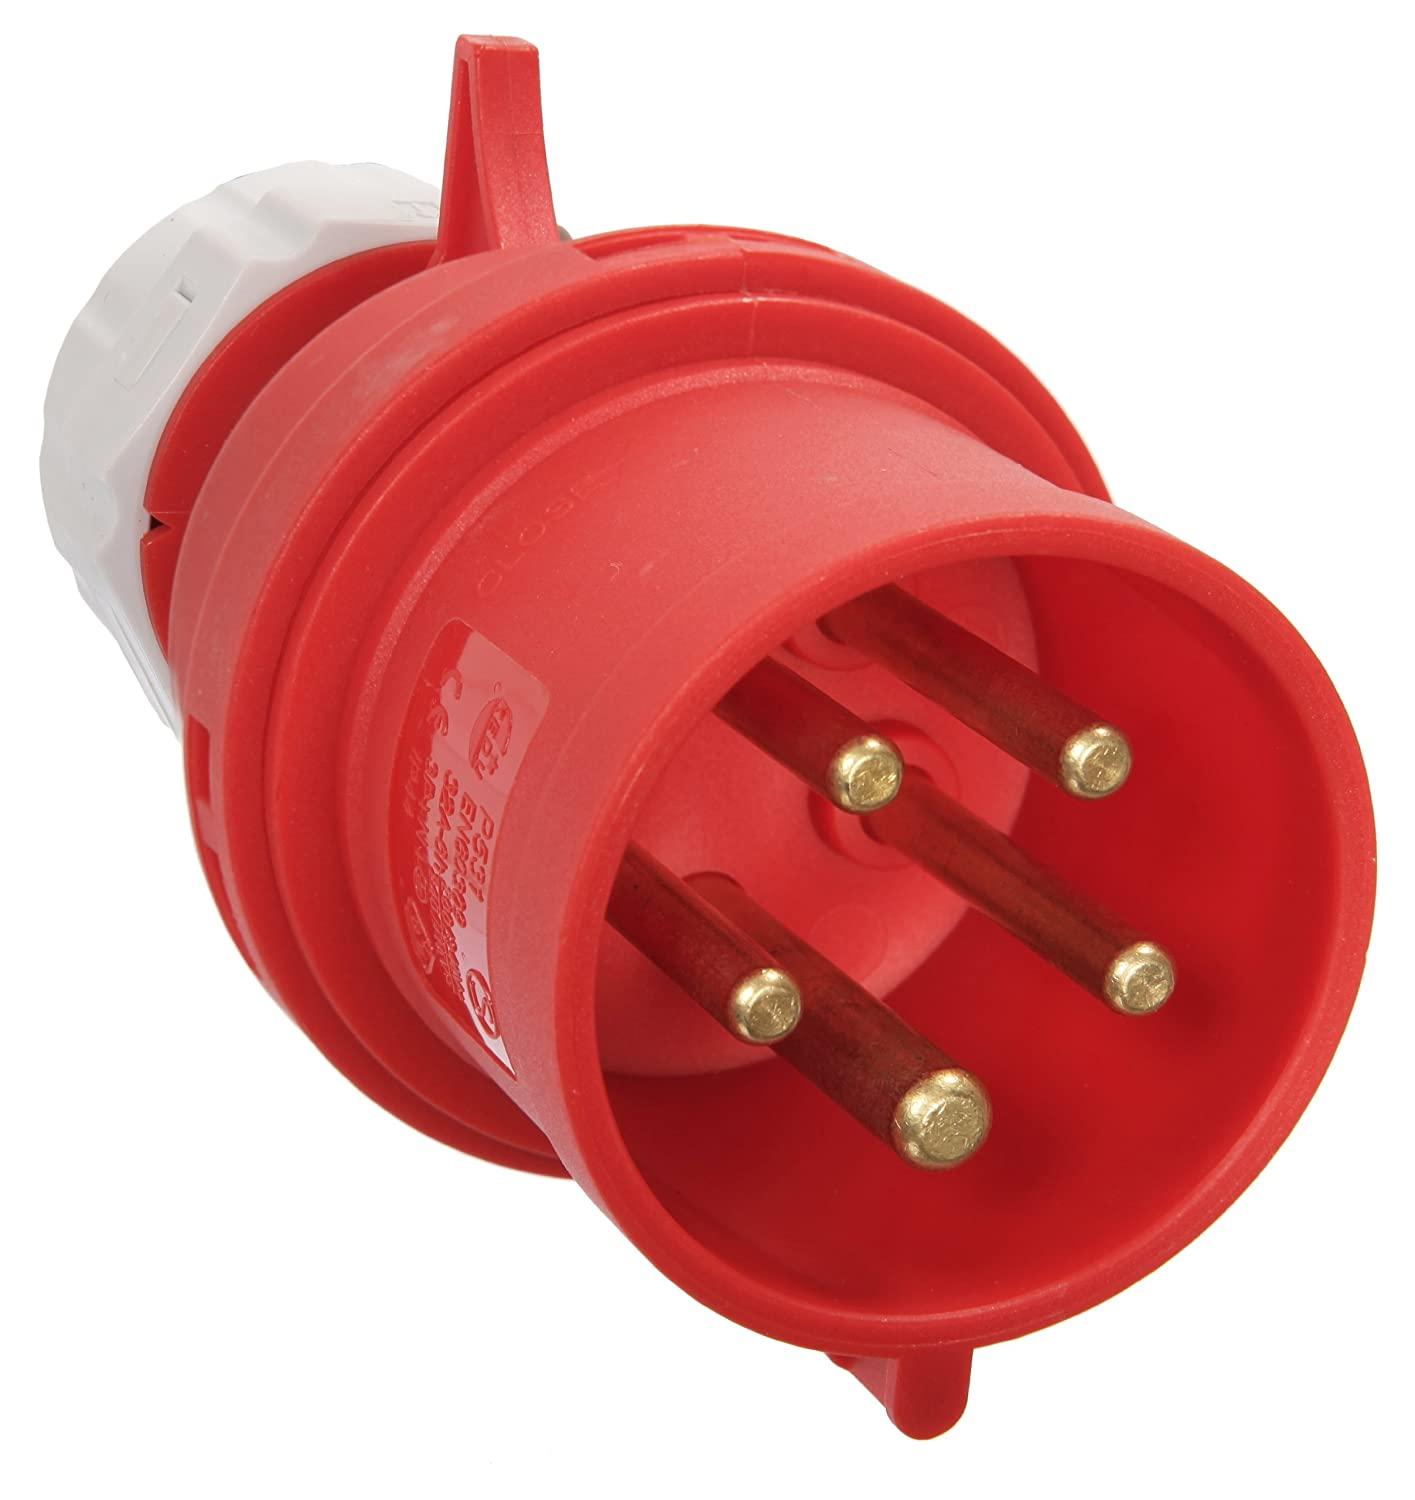 AS  –   Schwabe 60422  Power Plug CEE plug, 32  A, 5-pin, 6H, 400  V 32 A 400 V as-Schwabe